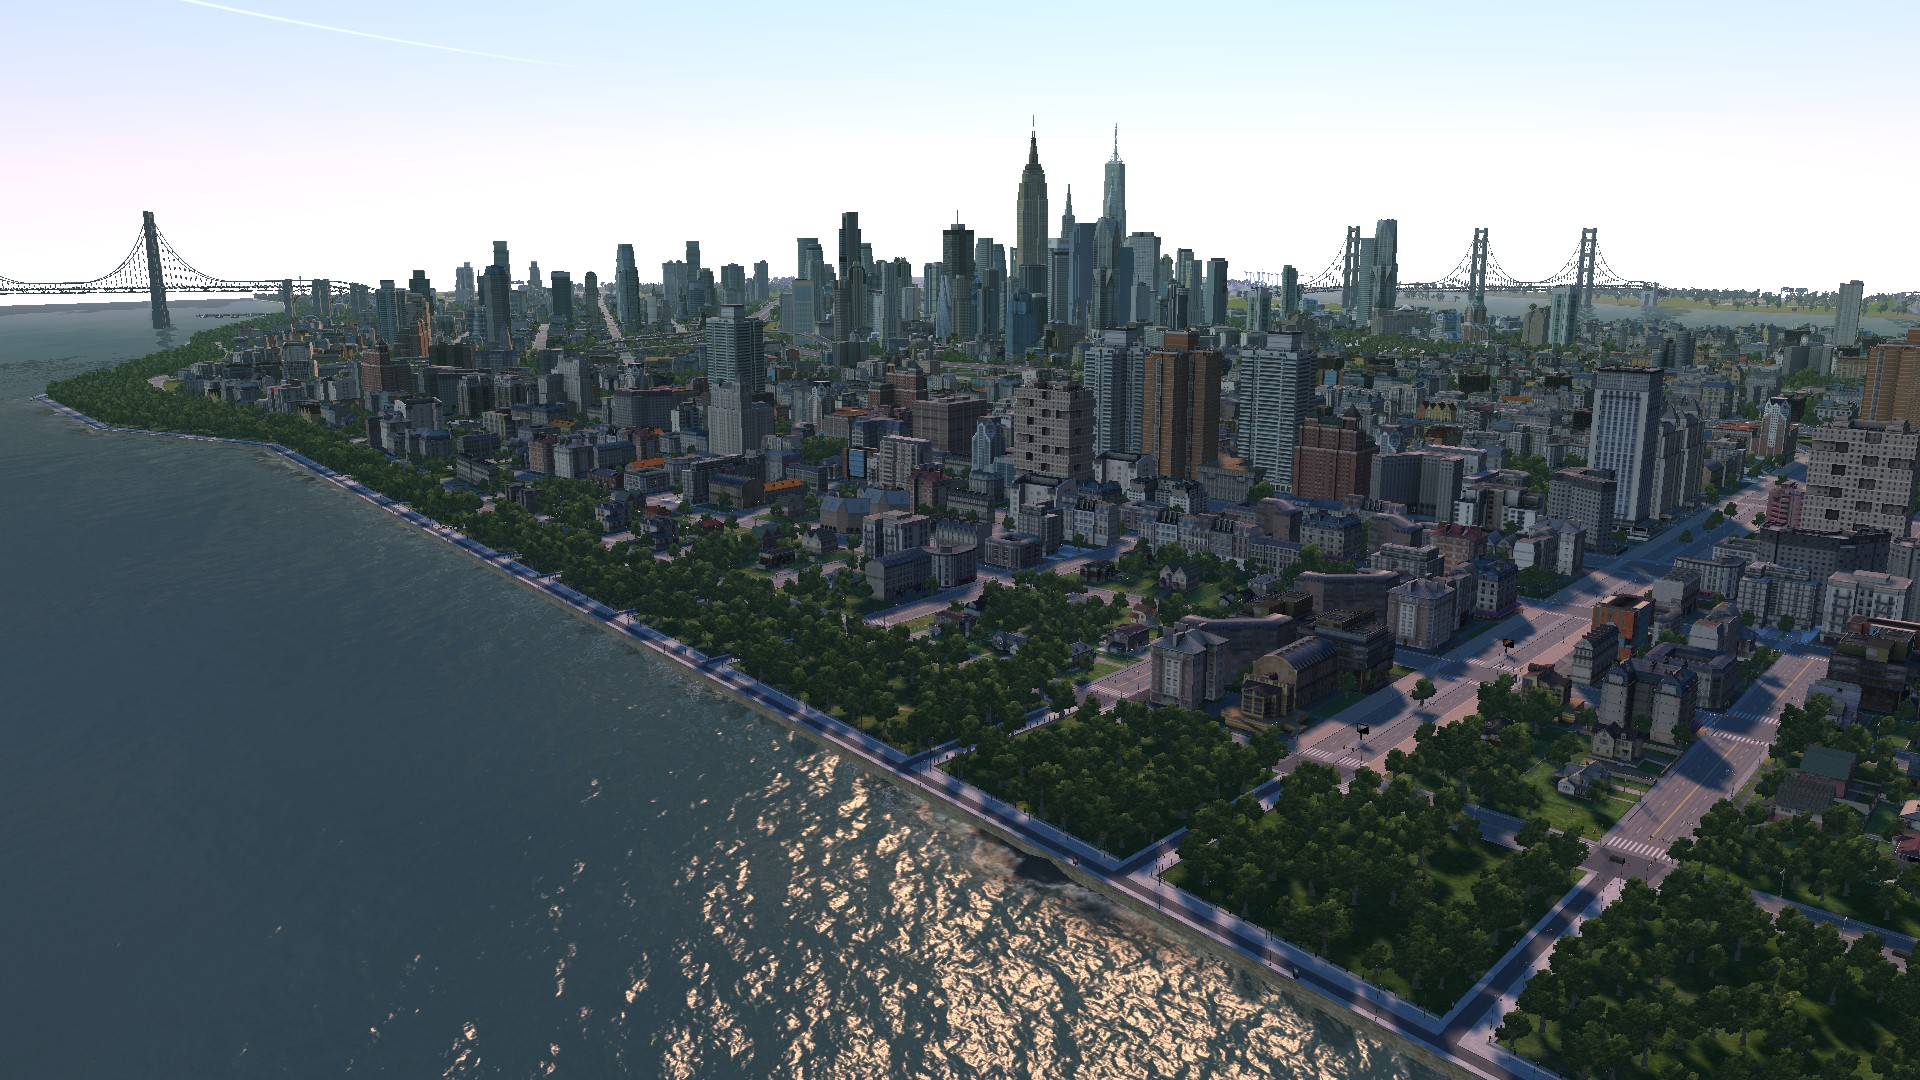 cxl_screenshot_liberty city_49.jpg